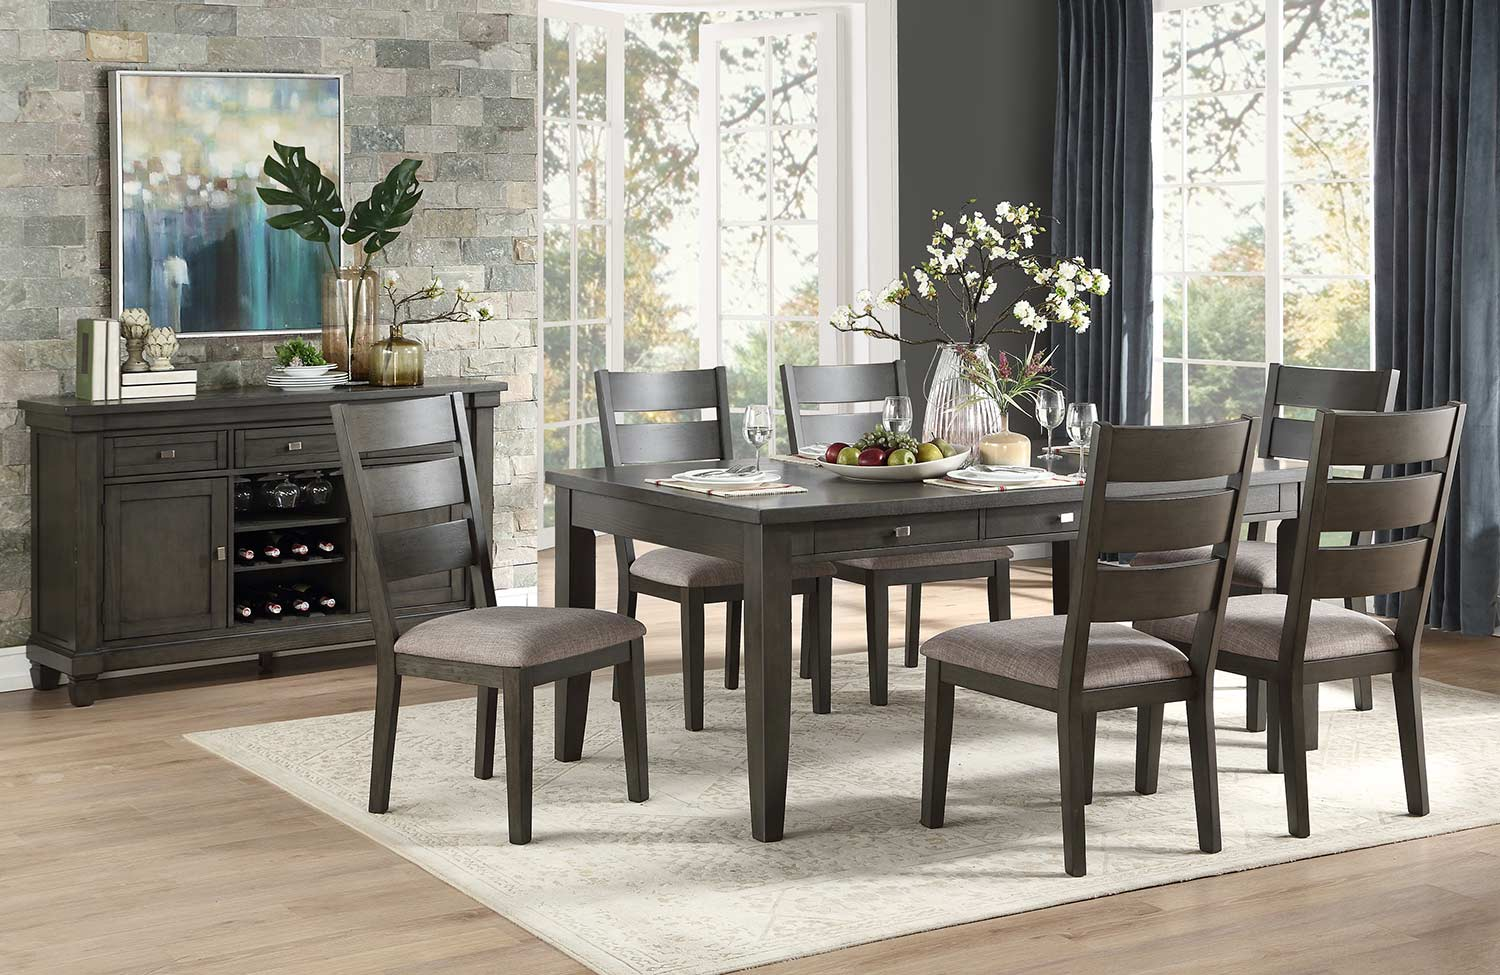 Homelegance Baresford Dining Set - Gray